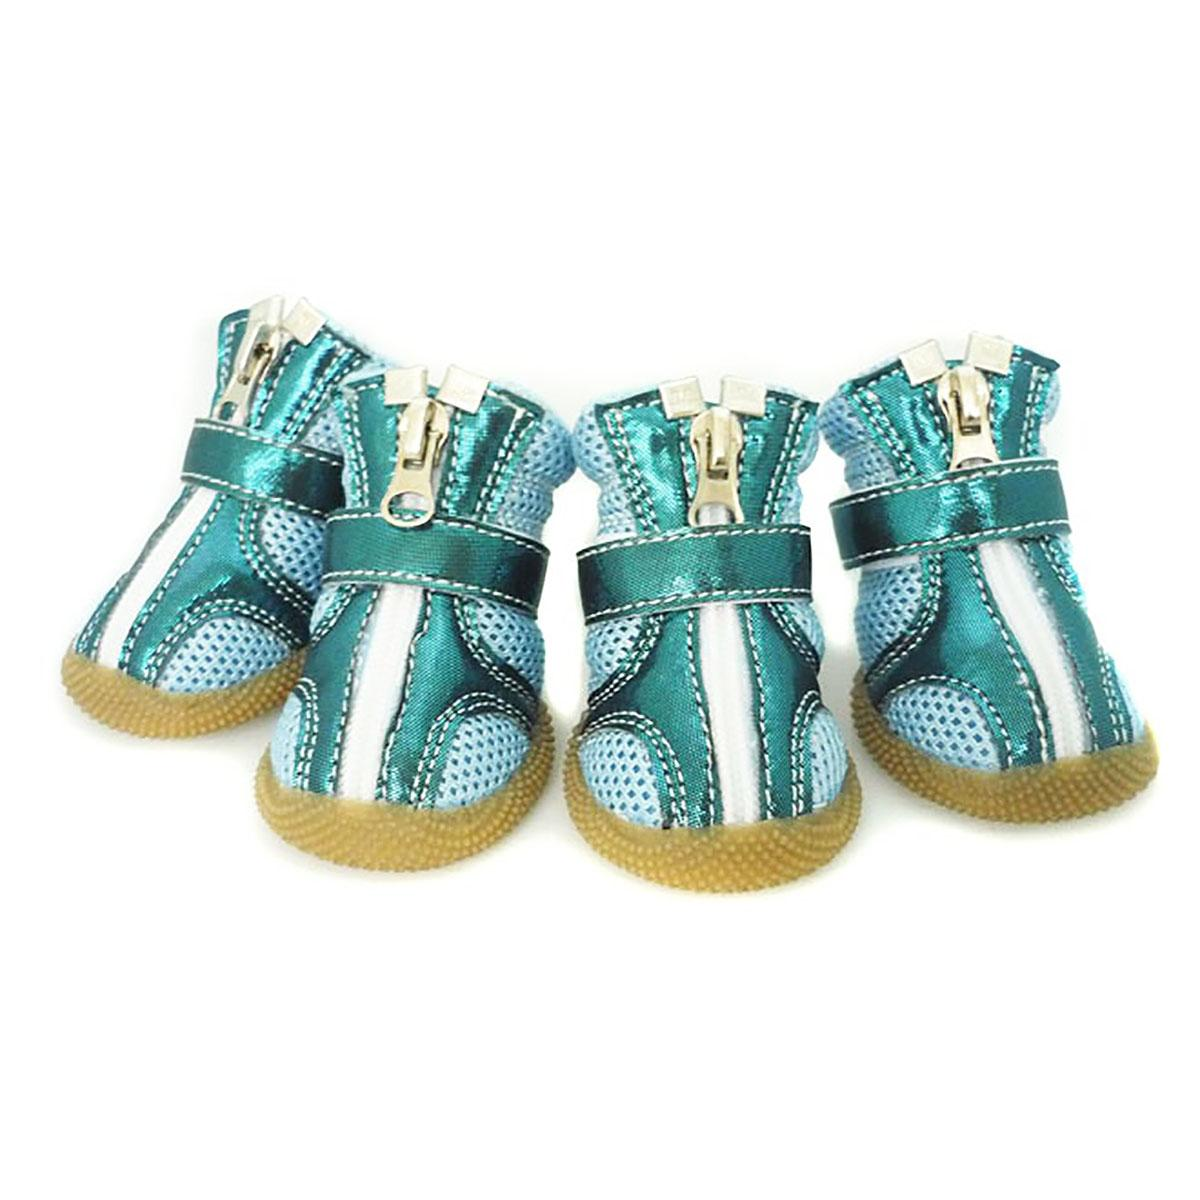 Sporty Dog Boots - Teal Metallic